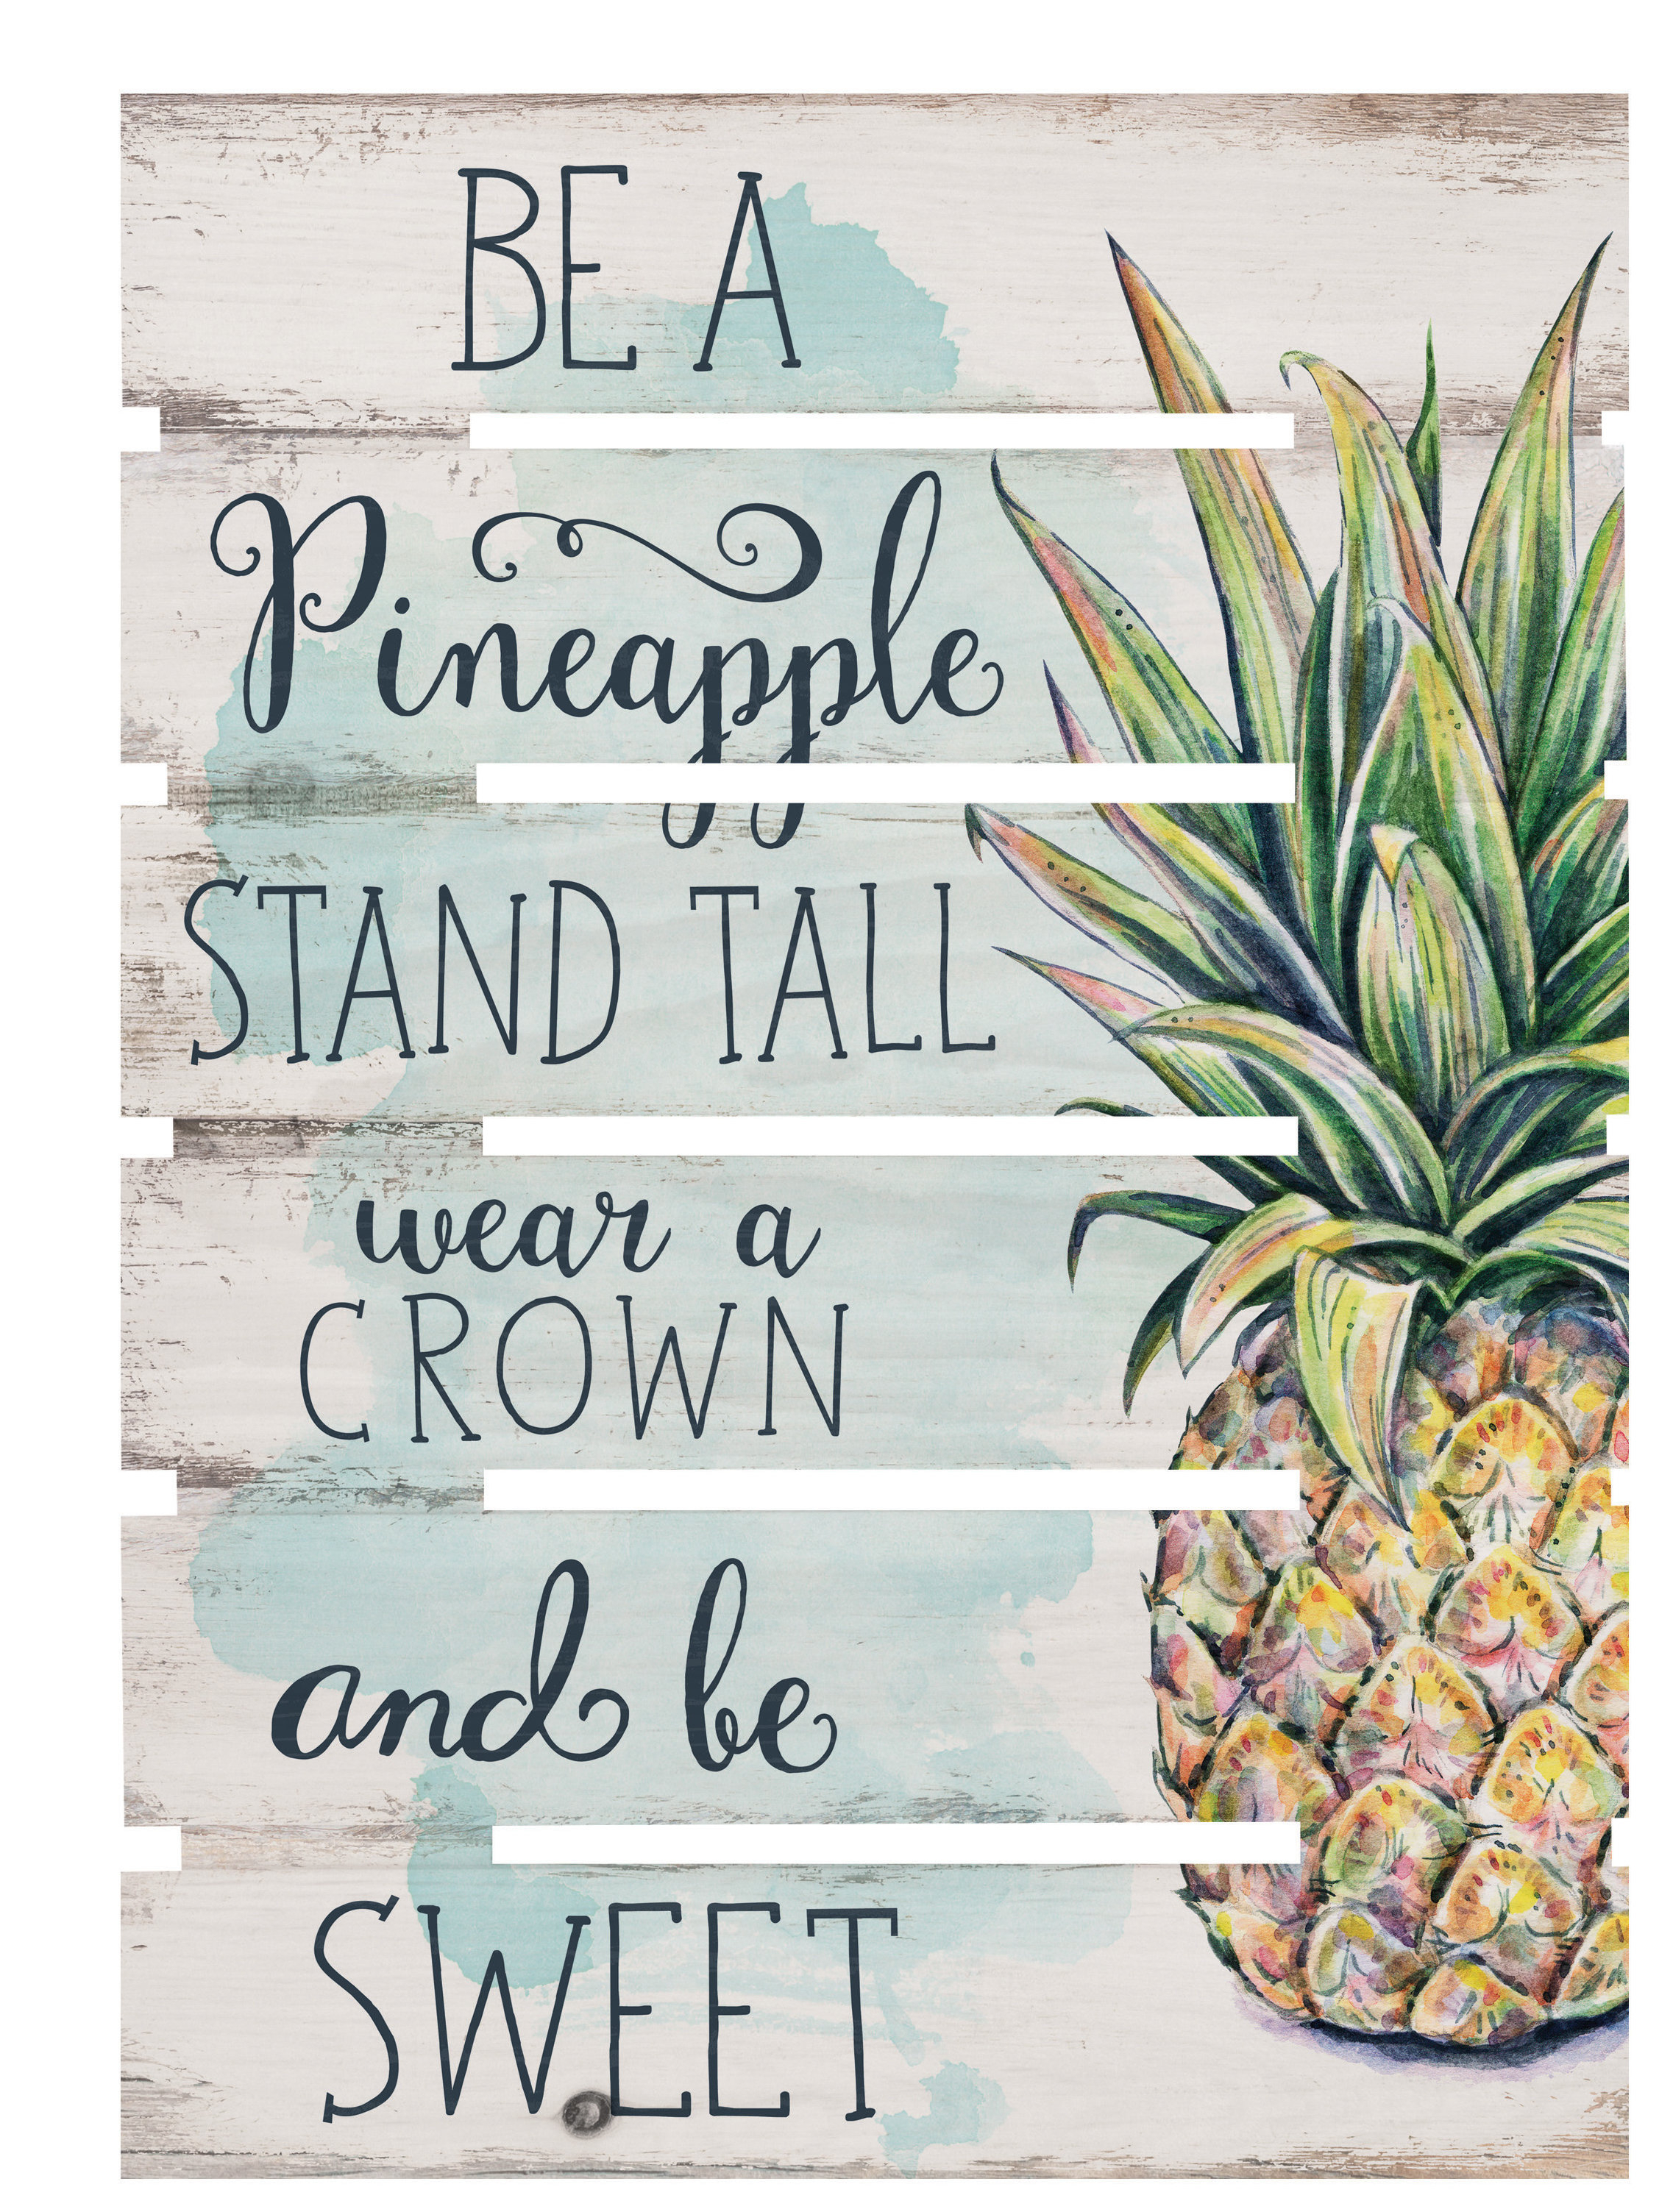 Skid Be A Pineapple Wall Décor With Regard To Pineapple Wall Decor (View 11 of 30)